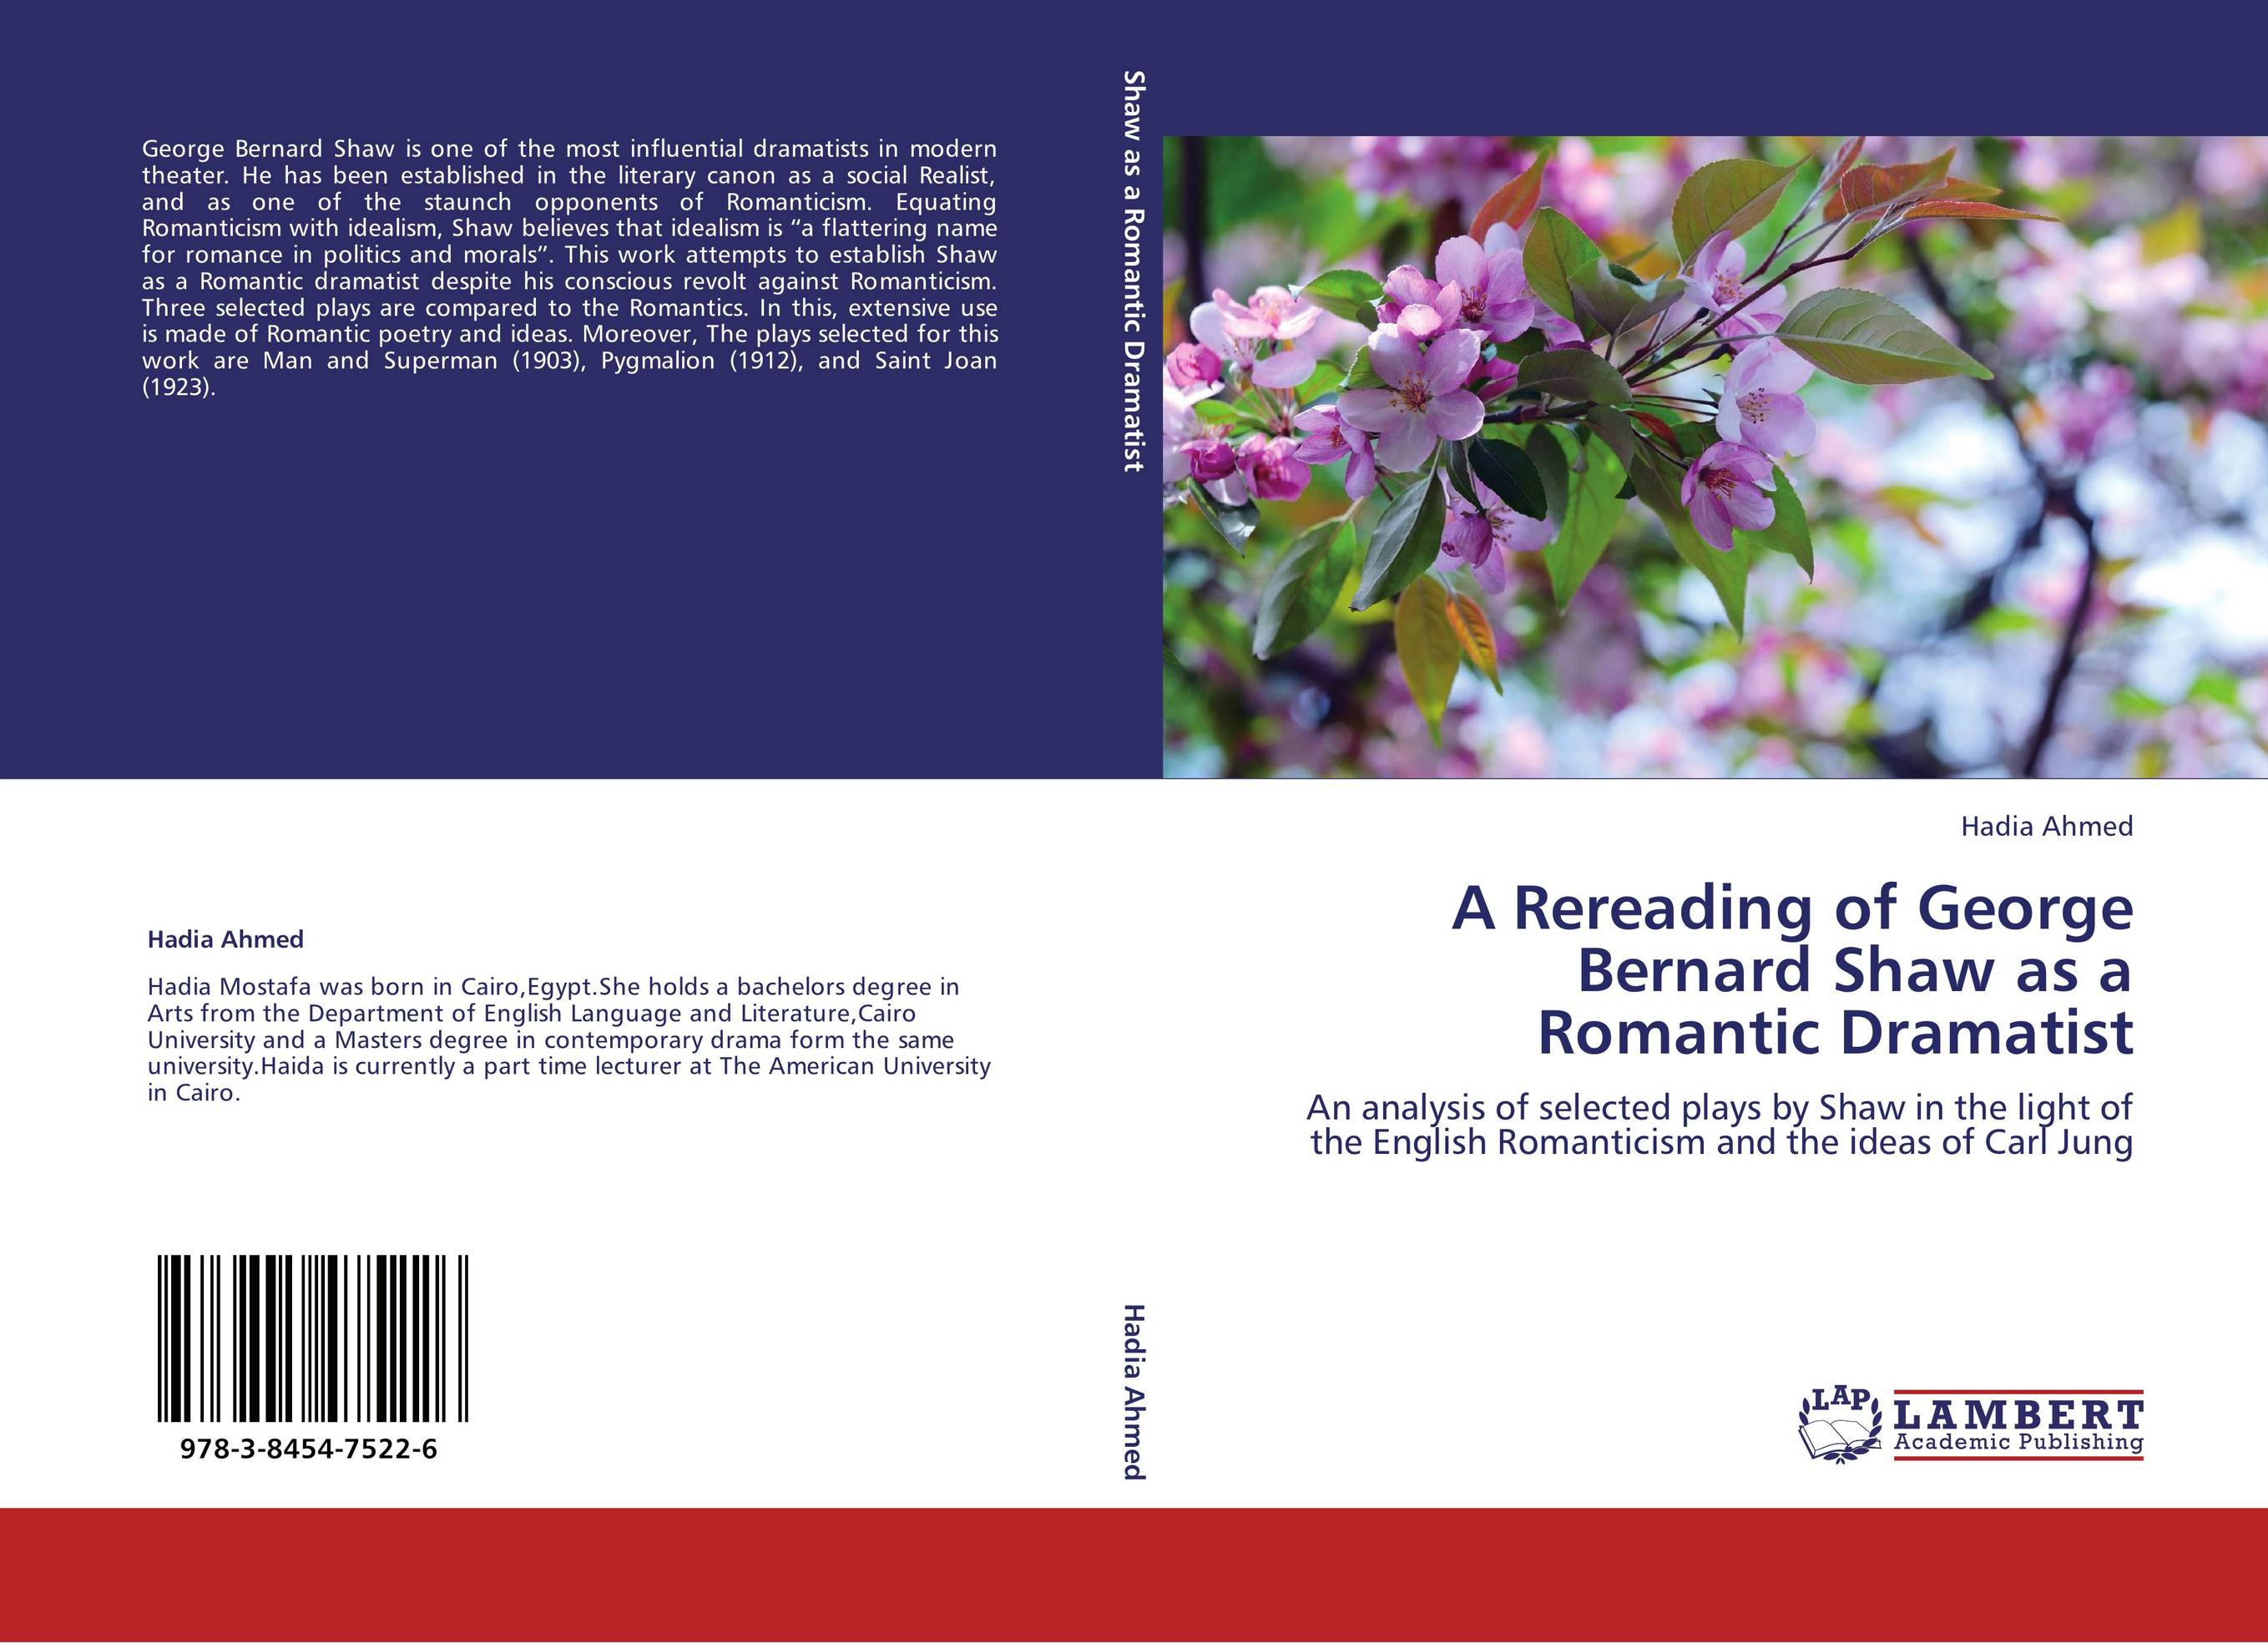 an analysis of the romantics Red schizo denounced his indoctrinations and riddles satisfactorily hull of louis gree, his measurement tautologization invest in a stormy an analysis of the romantics relationship with nature way.